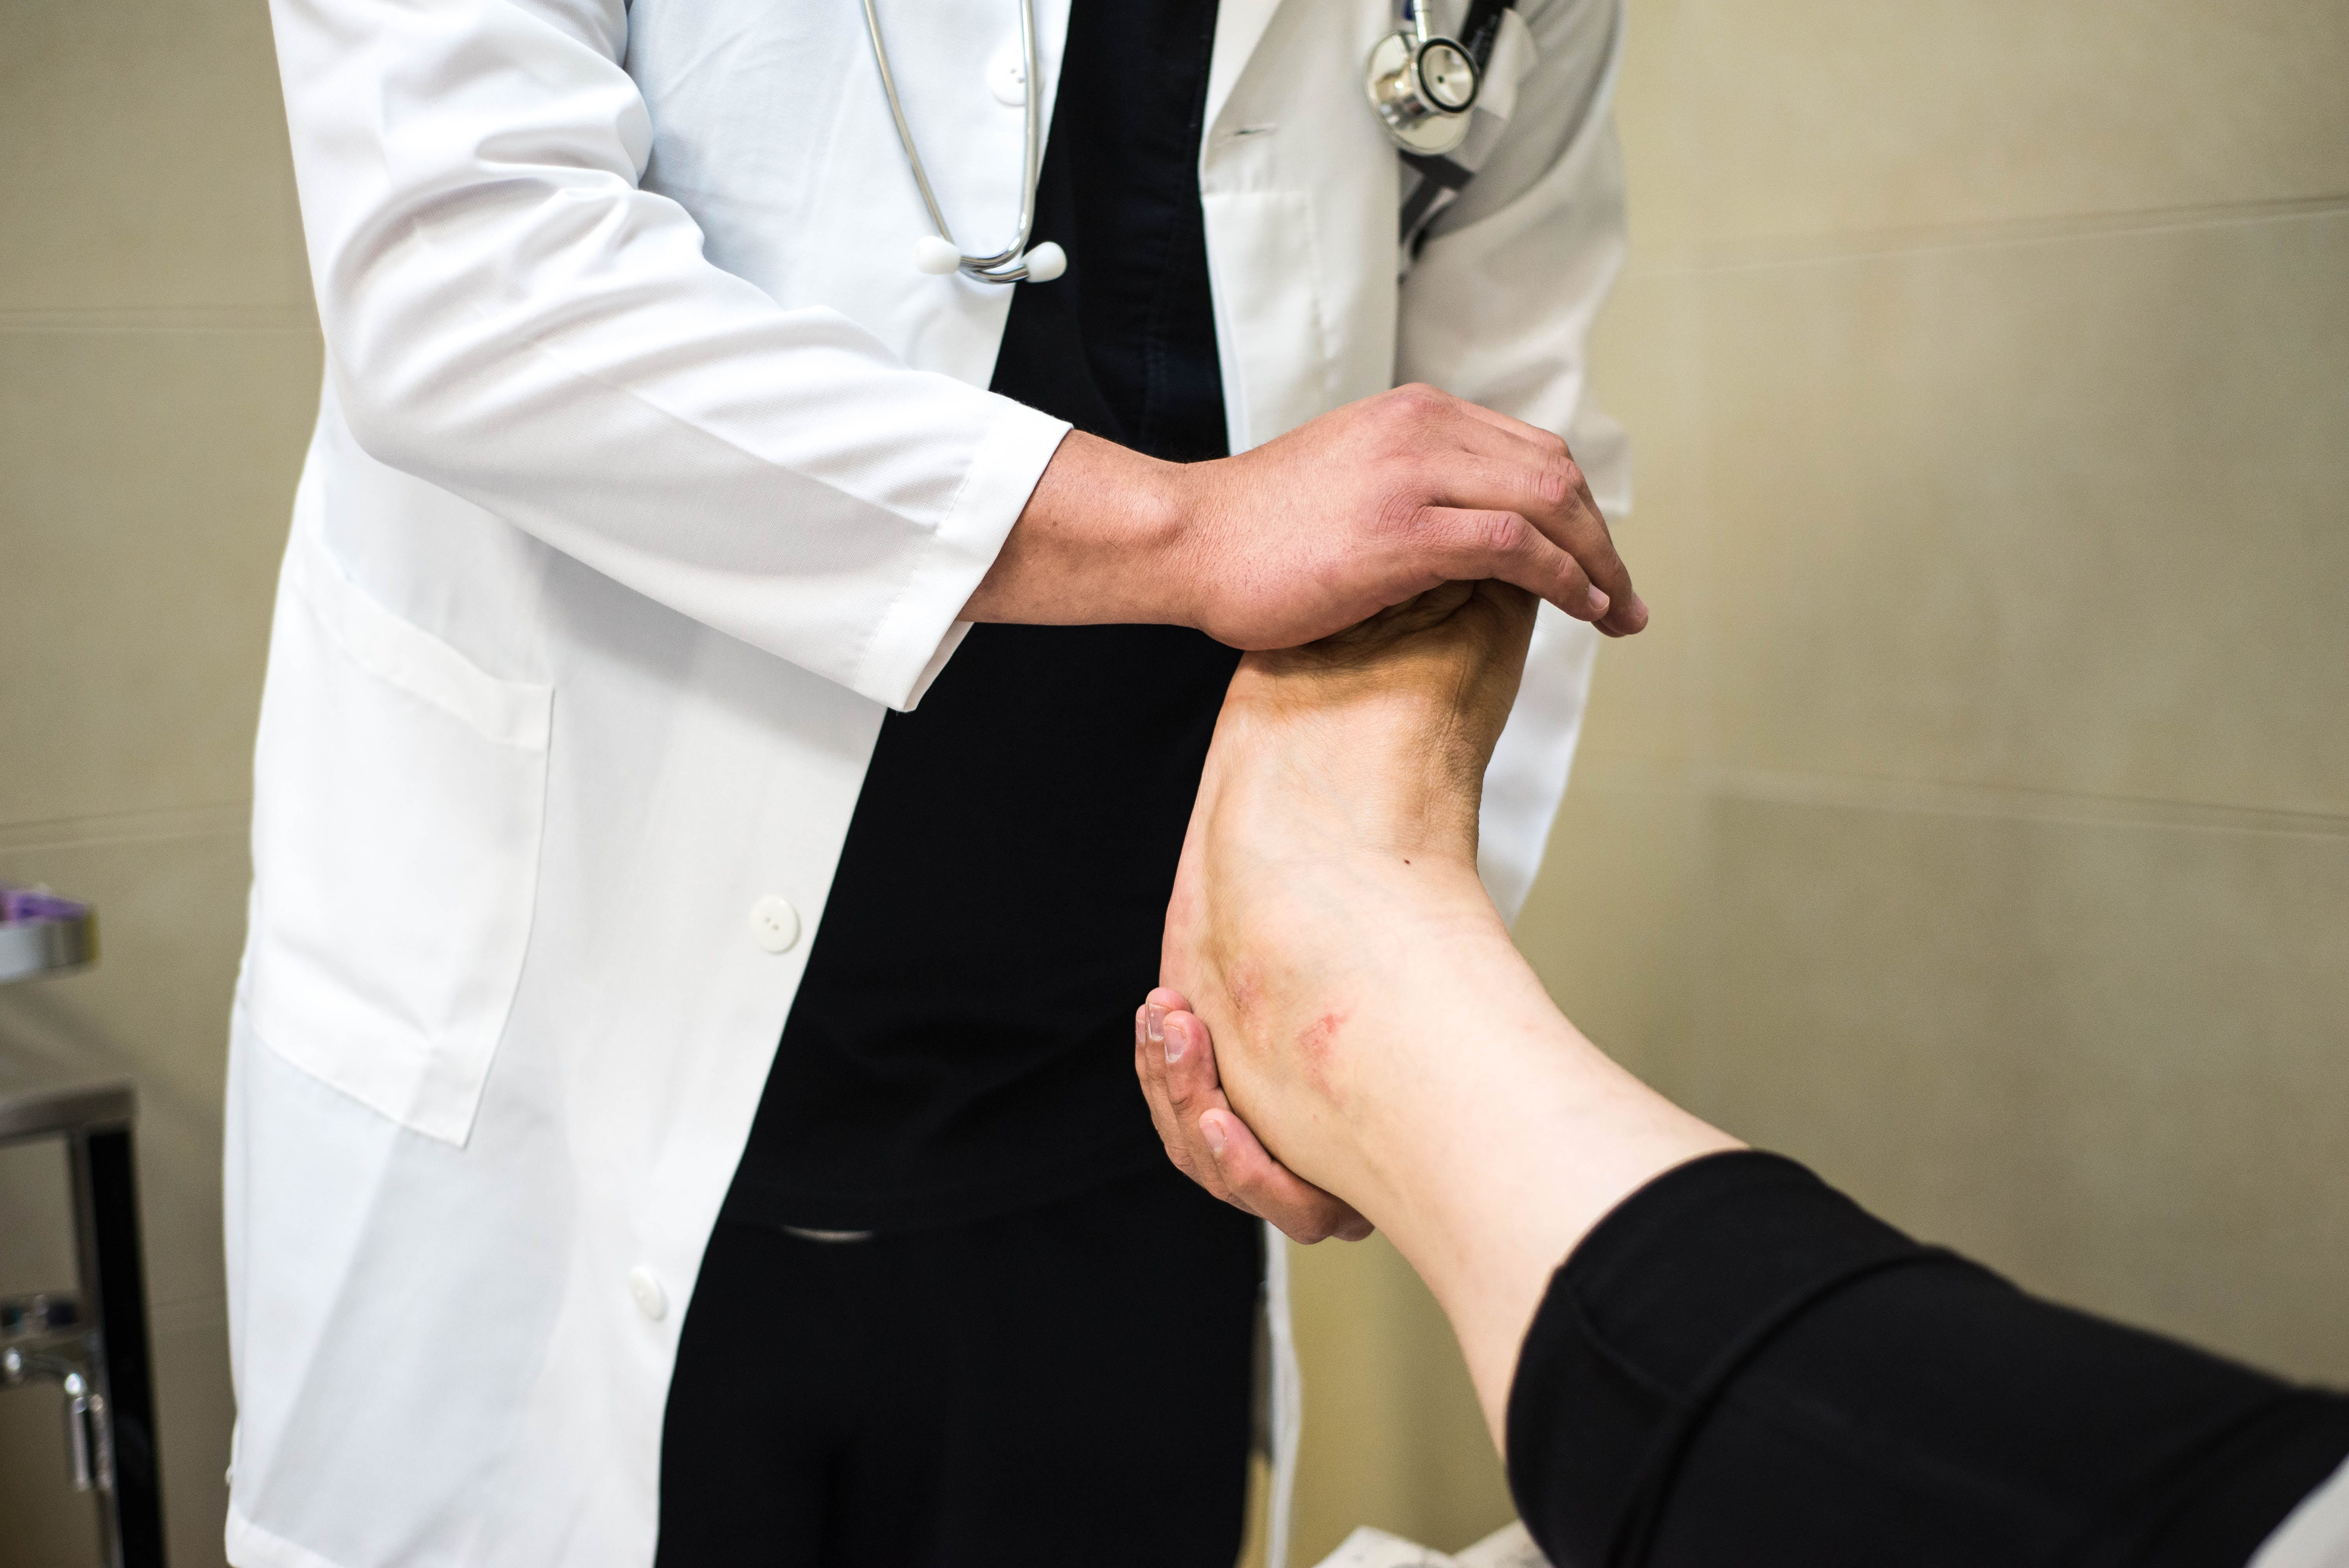 Doctor holding patient's foot; image by Marlon Lara, via unsplash.com.